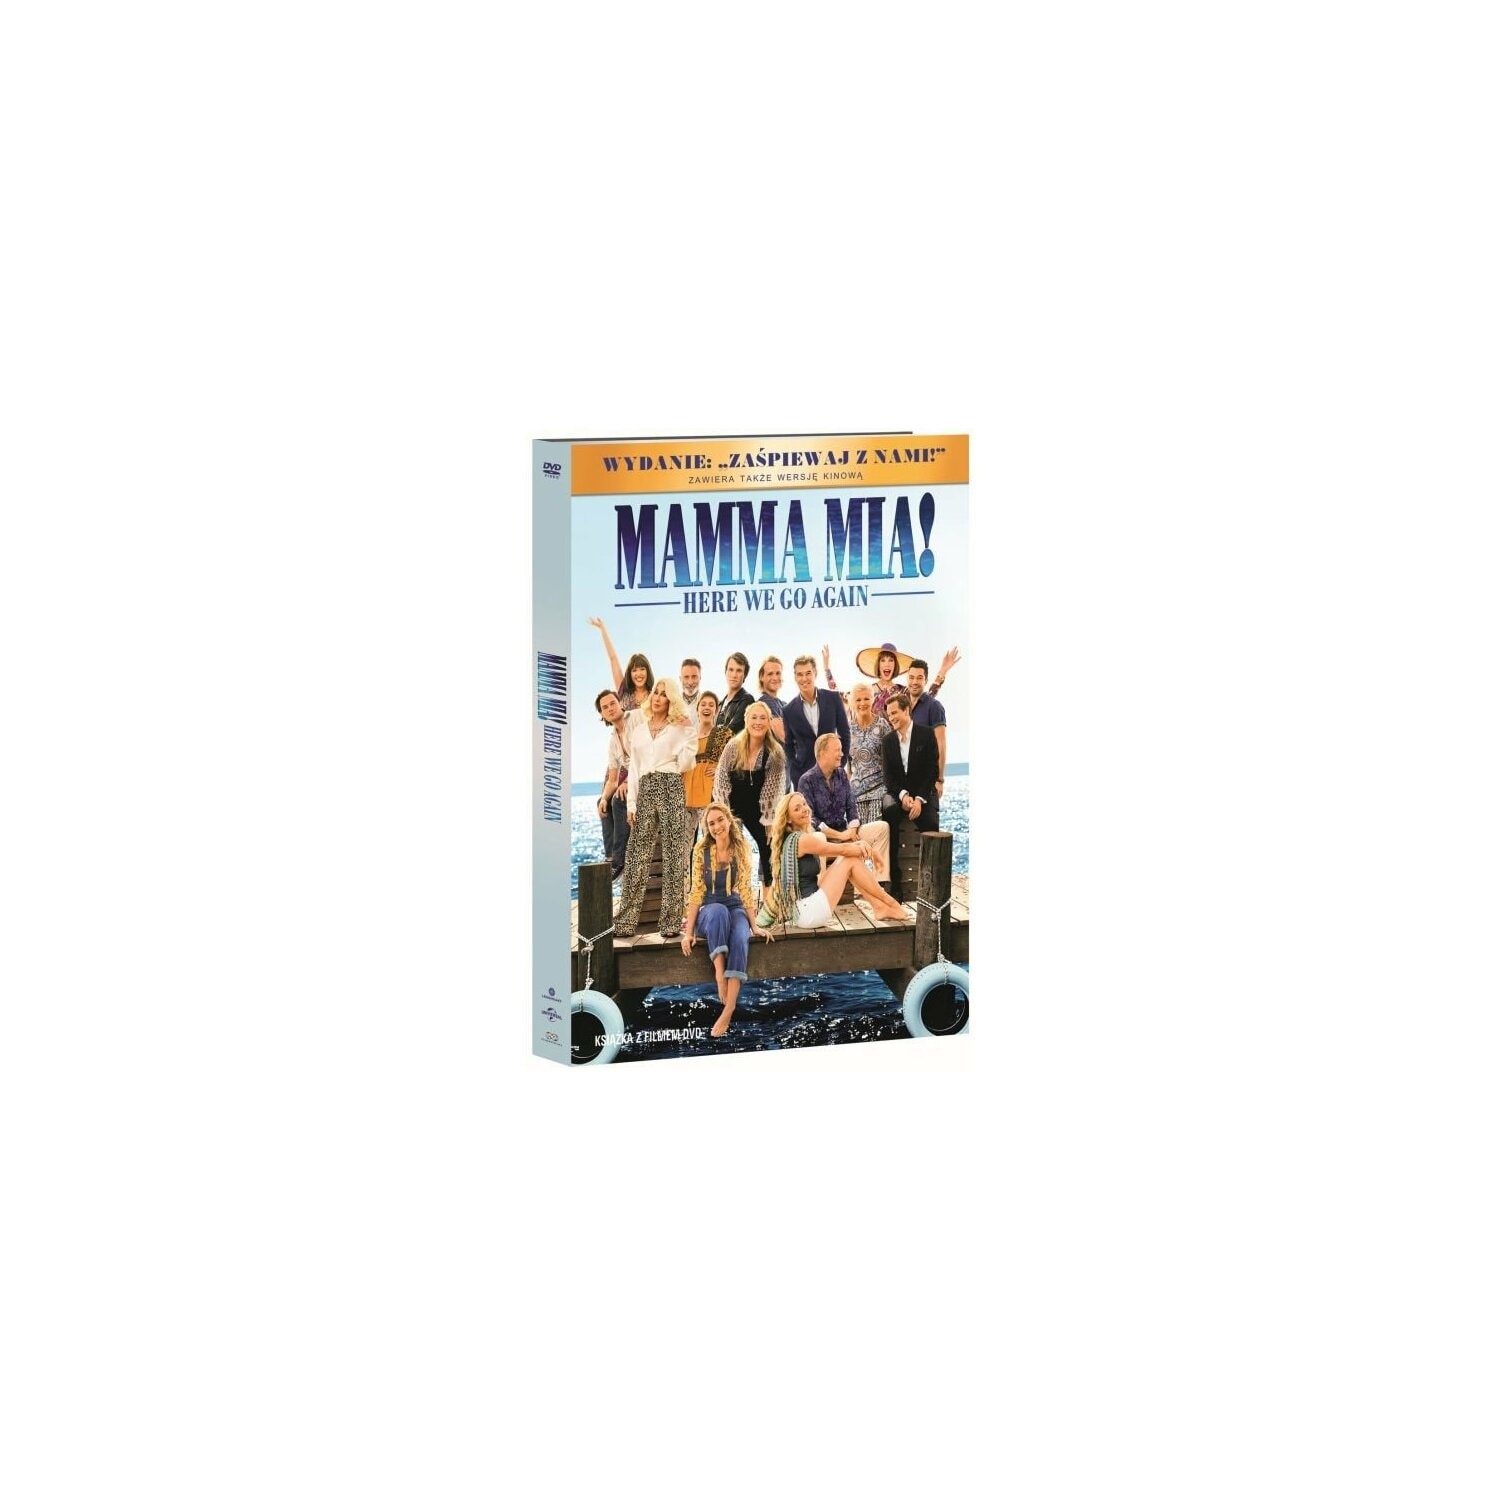 Mamma Mia! Here We Go Again (DVD) + Książka